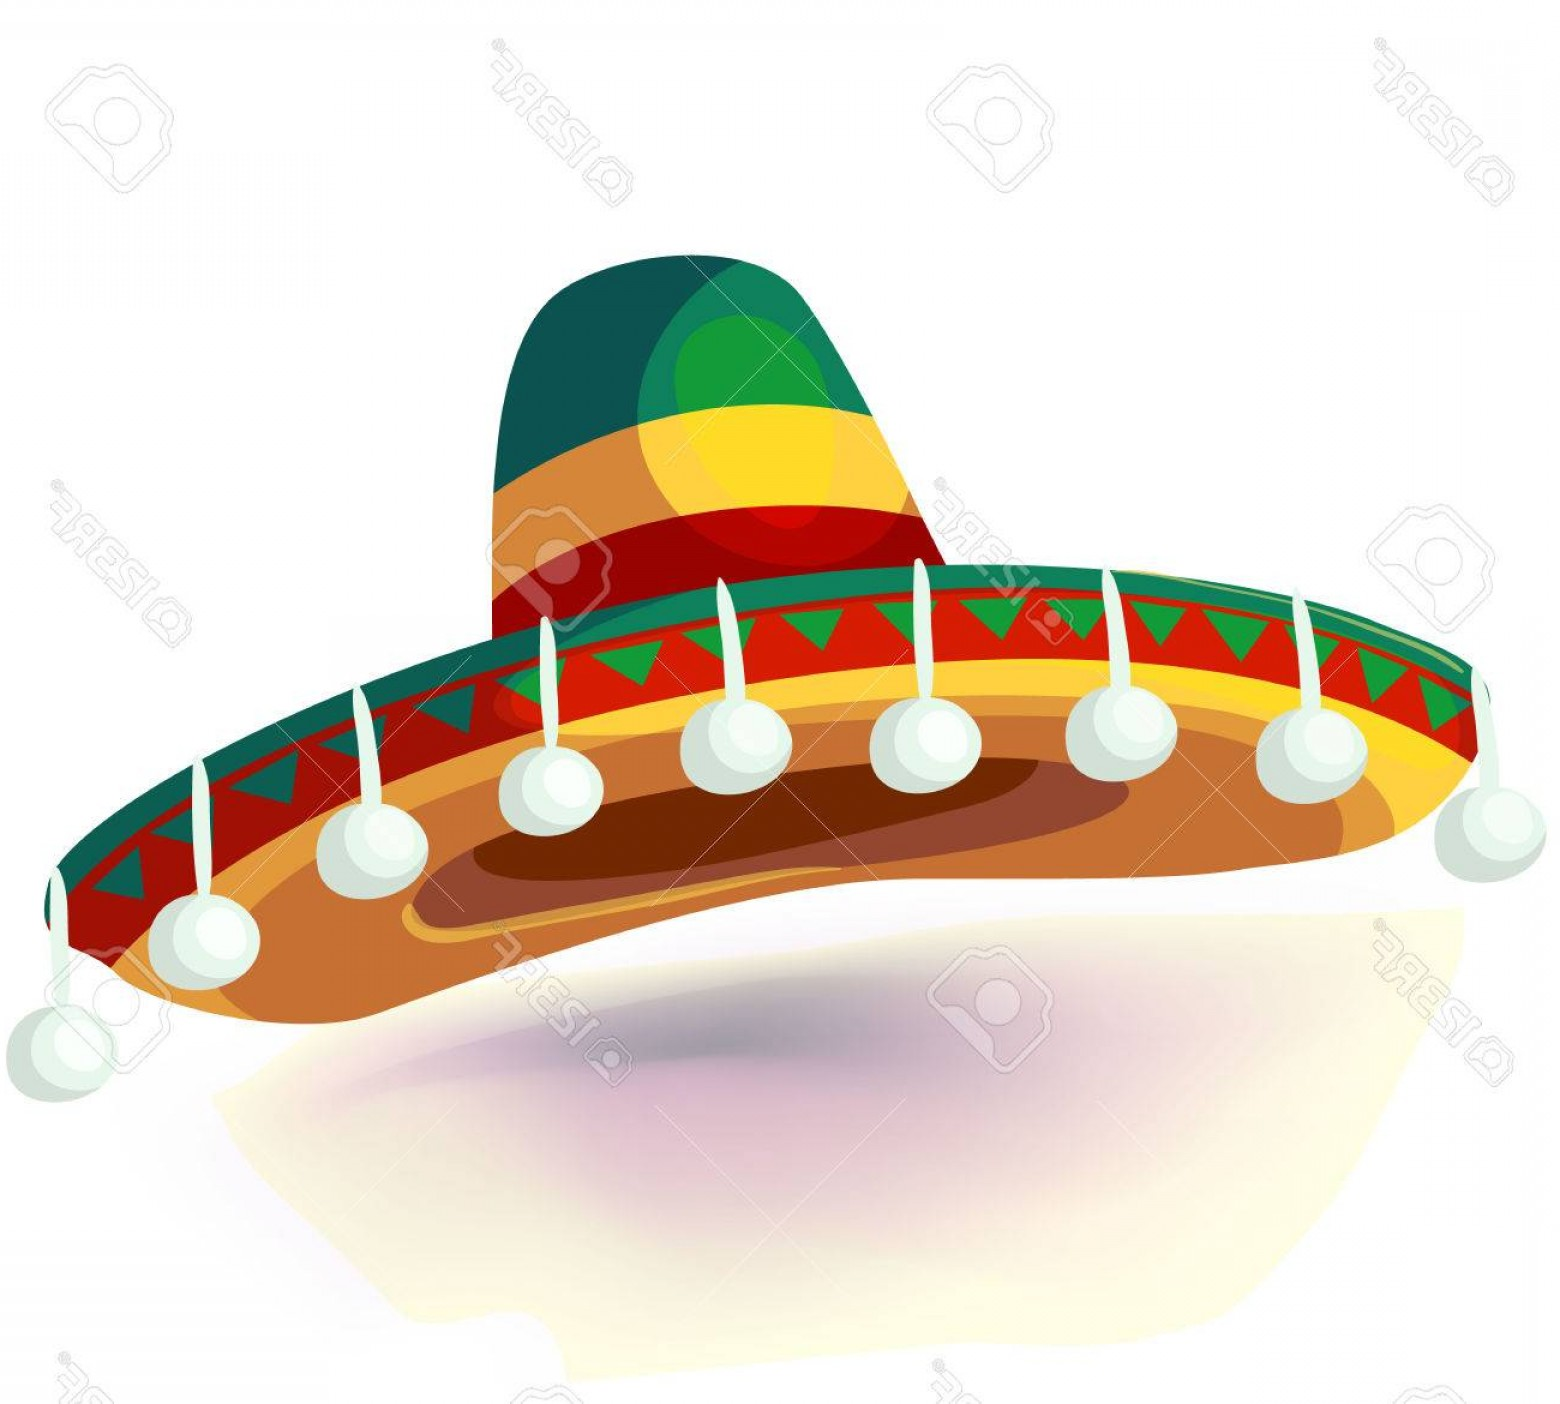 Sombrero Hat Vector: Photostock Vector Sombrero Hat Vector Illustration Mexican Hat On White Background Masquerade Or Carnival Costume Head